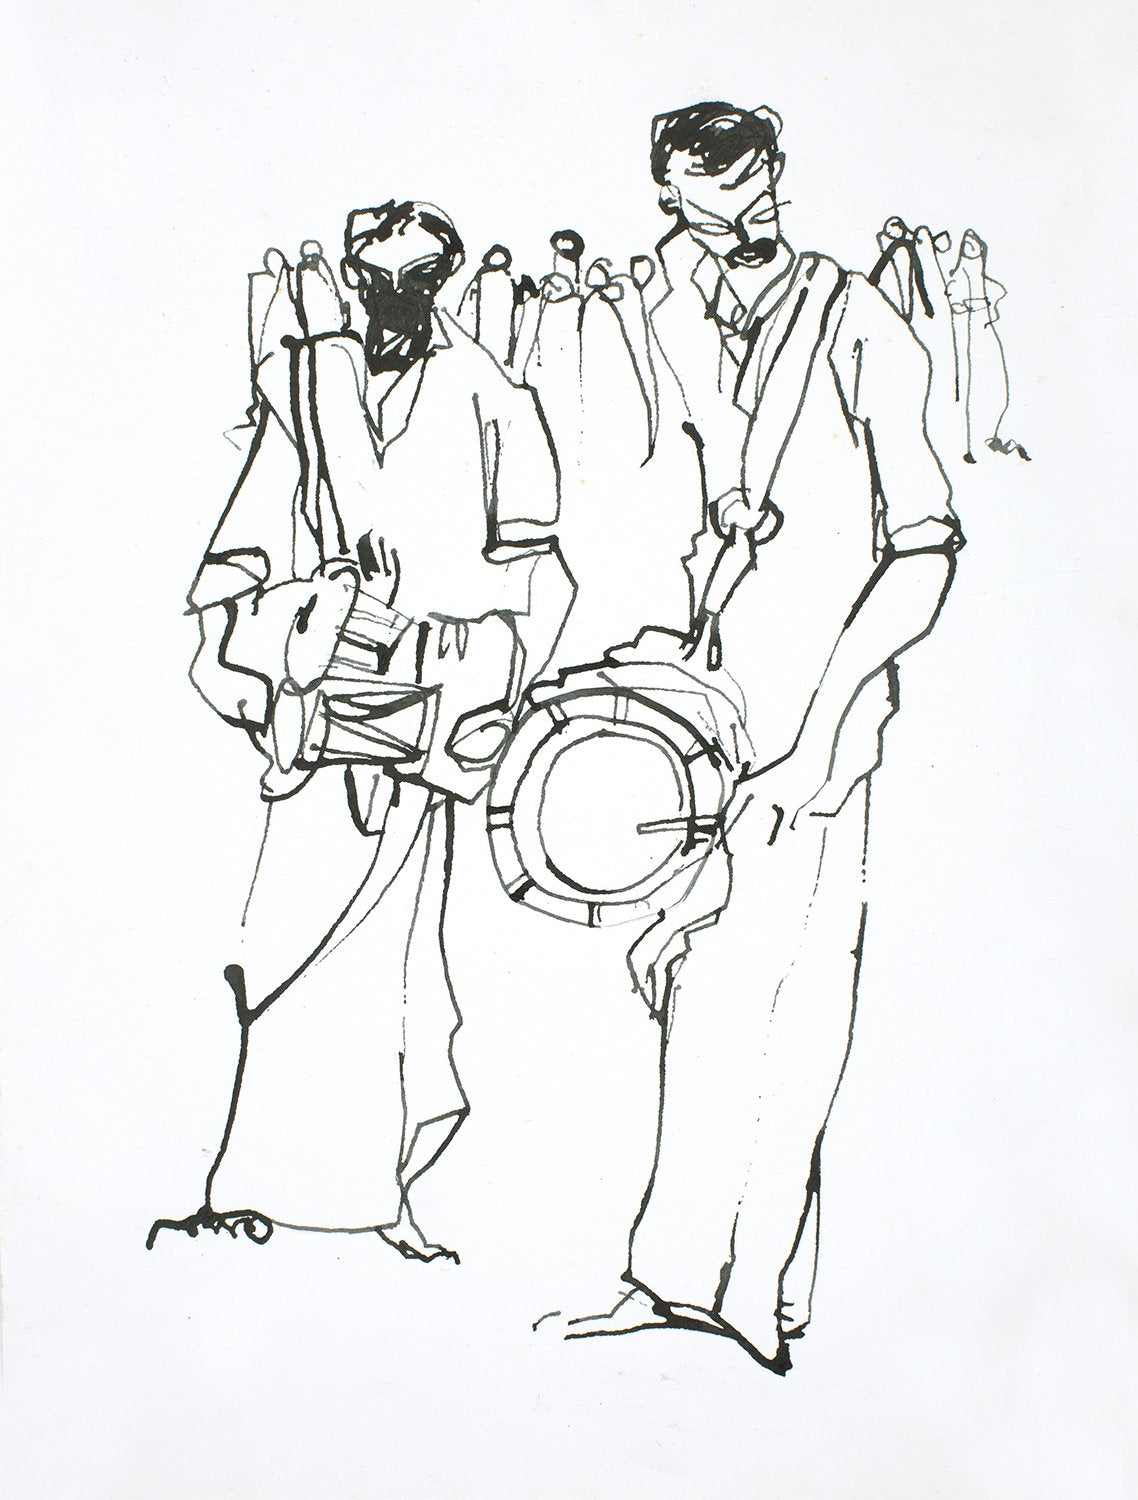 Performers II|S. Mark Rathinaraj- Pen and Ink on Paper, , 13 x 9  inches